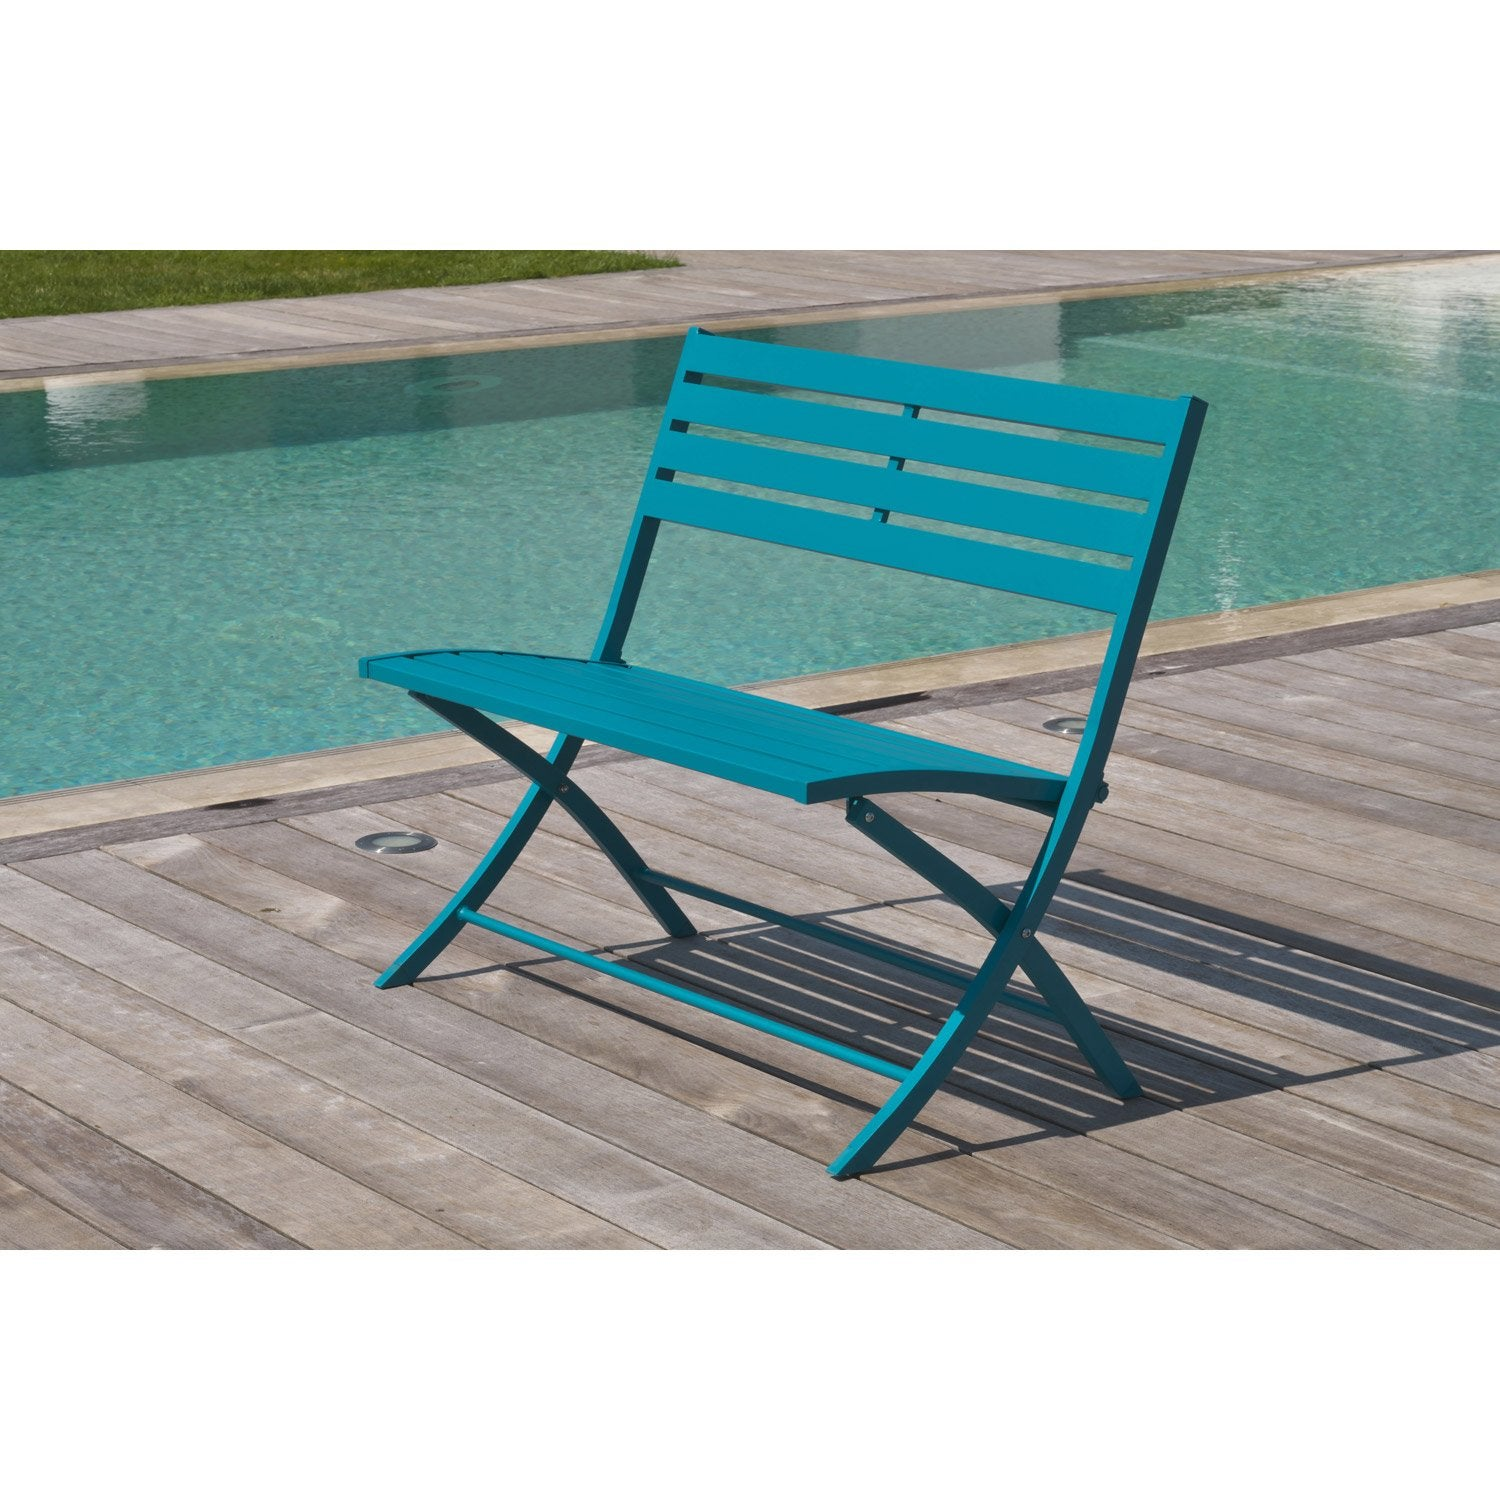 Banc exterieur leroy merlin awesome charming cabane bois for Banc jardin leroy merlin